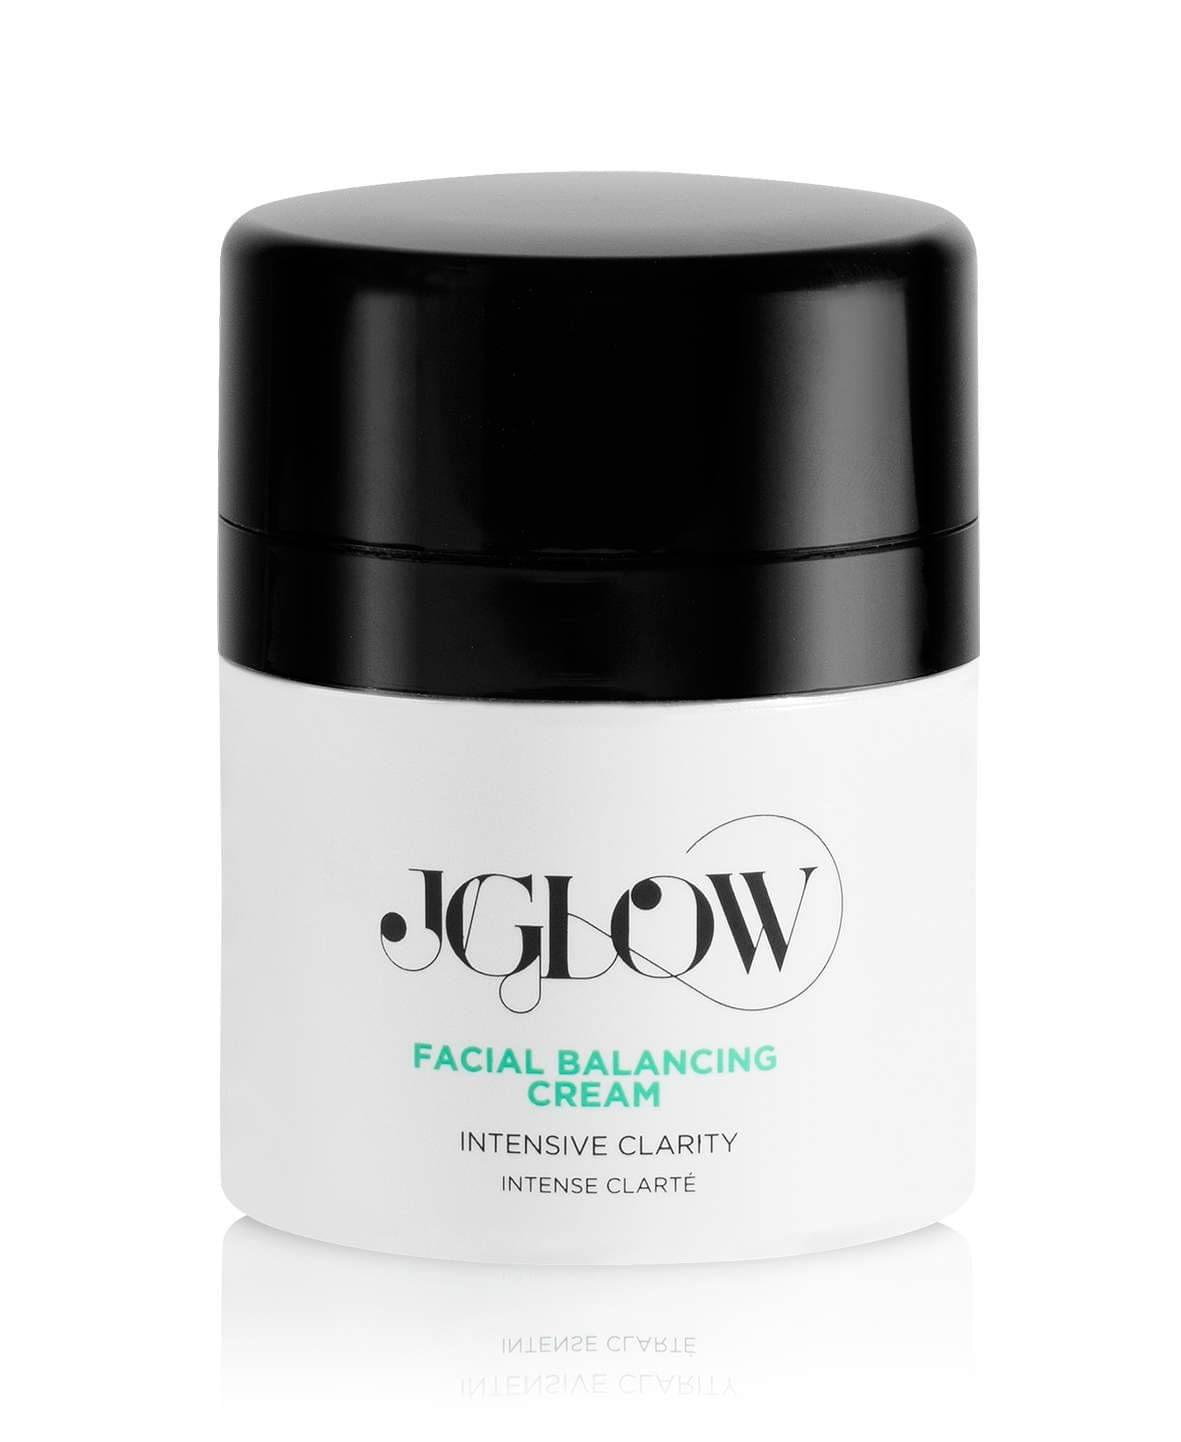 Joelle Paris Jglow Balancing Cream